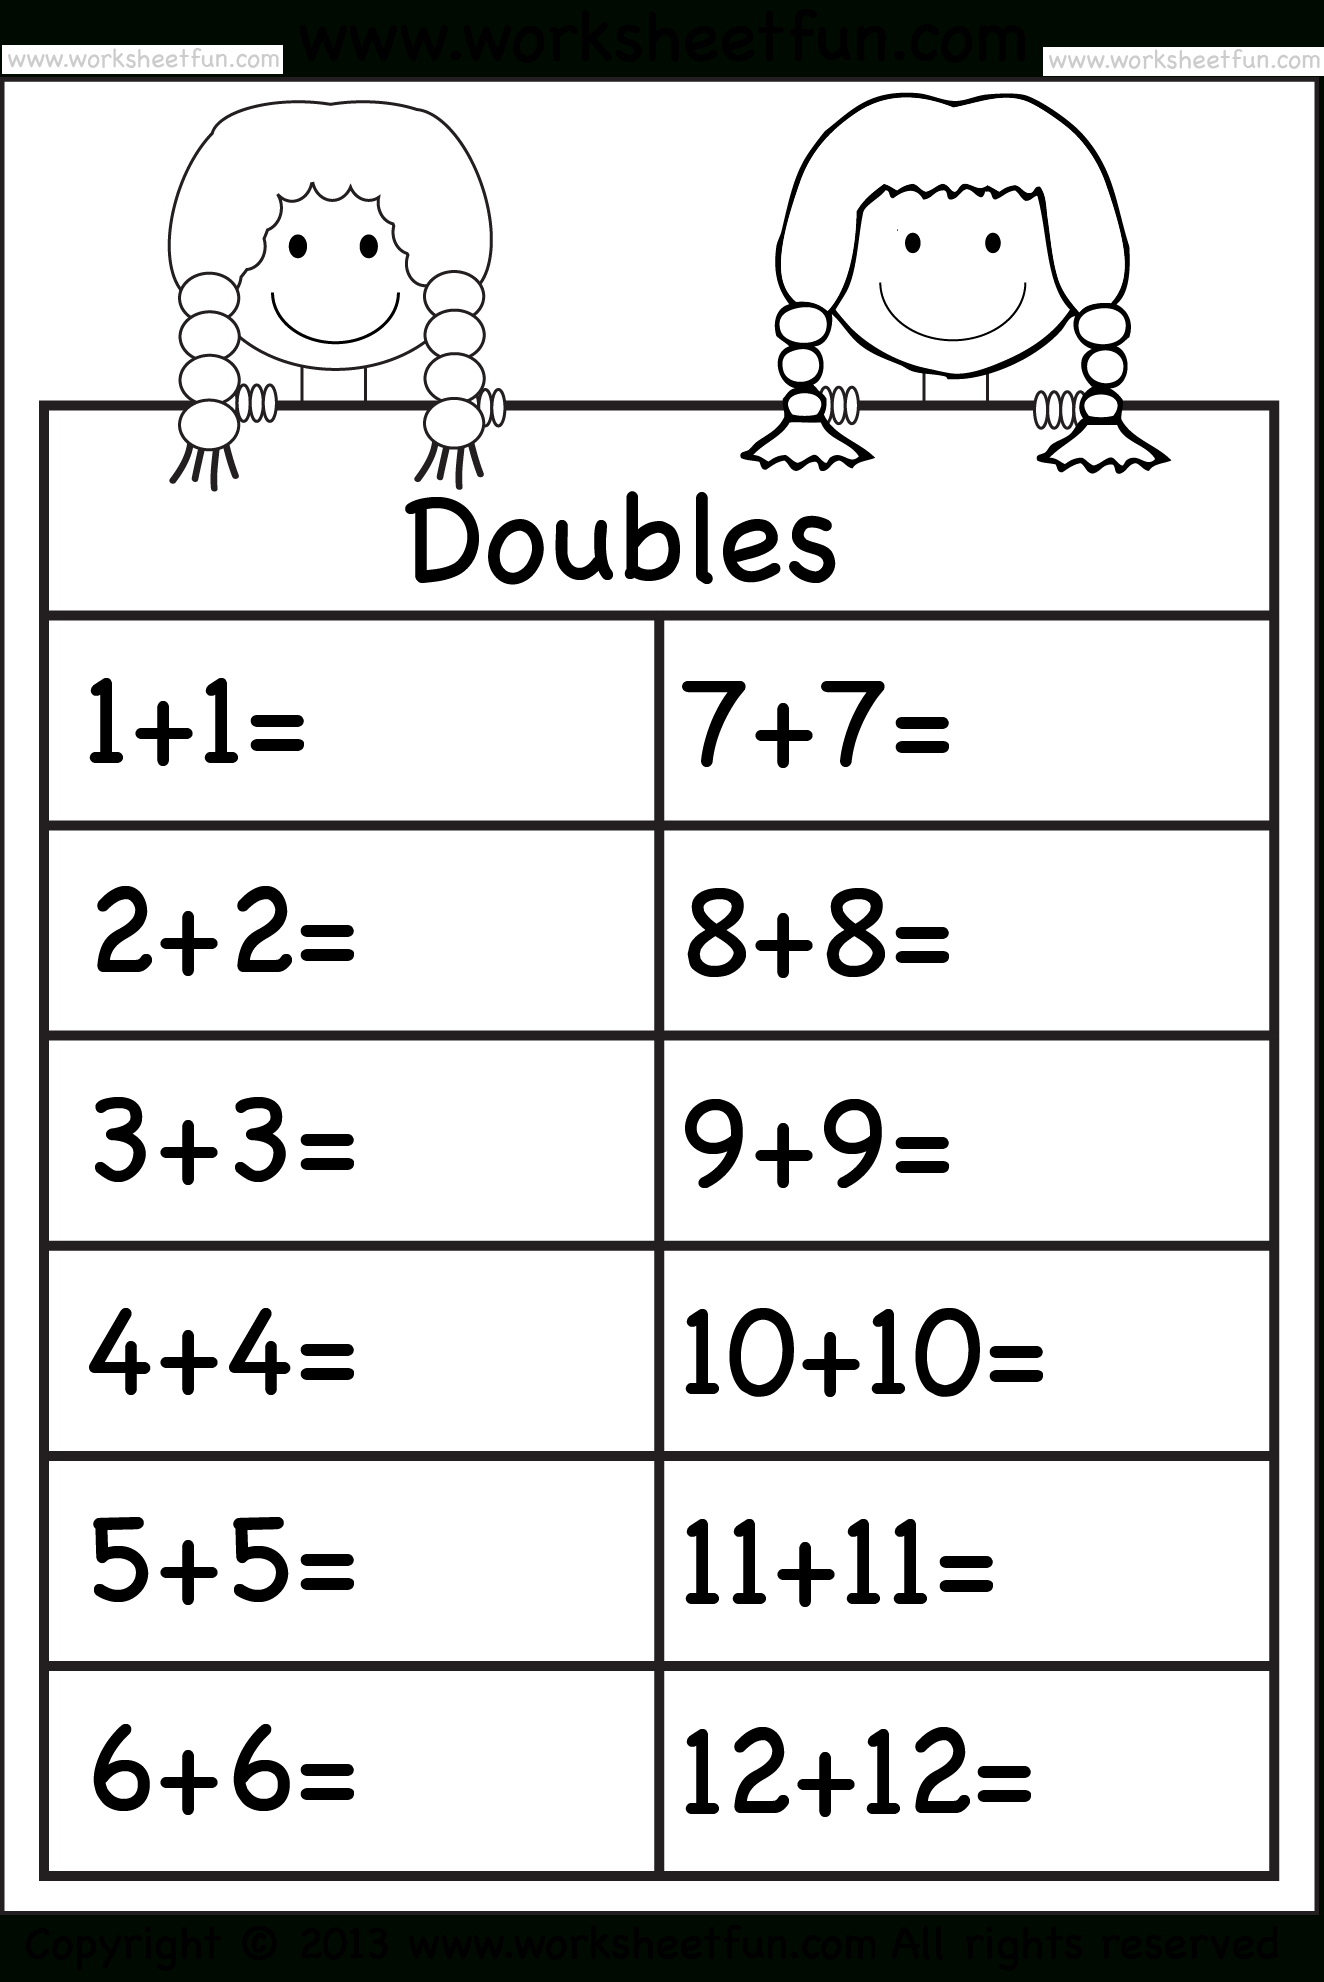 Adding Doubles Worksheets